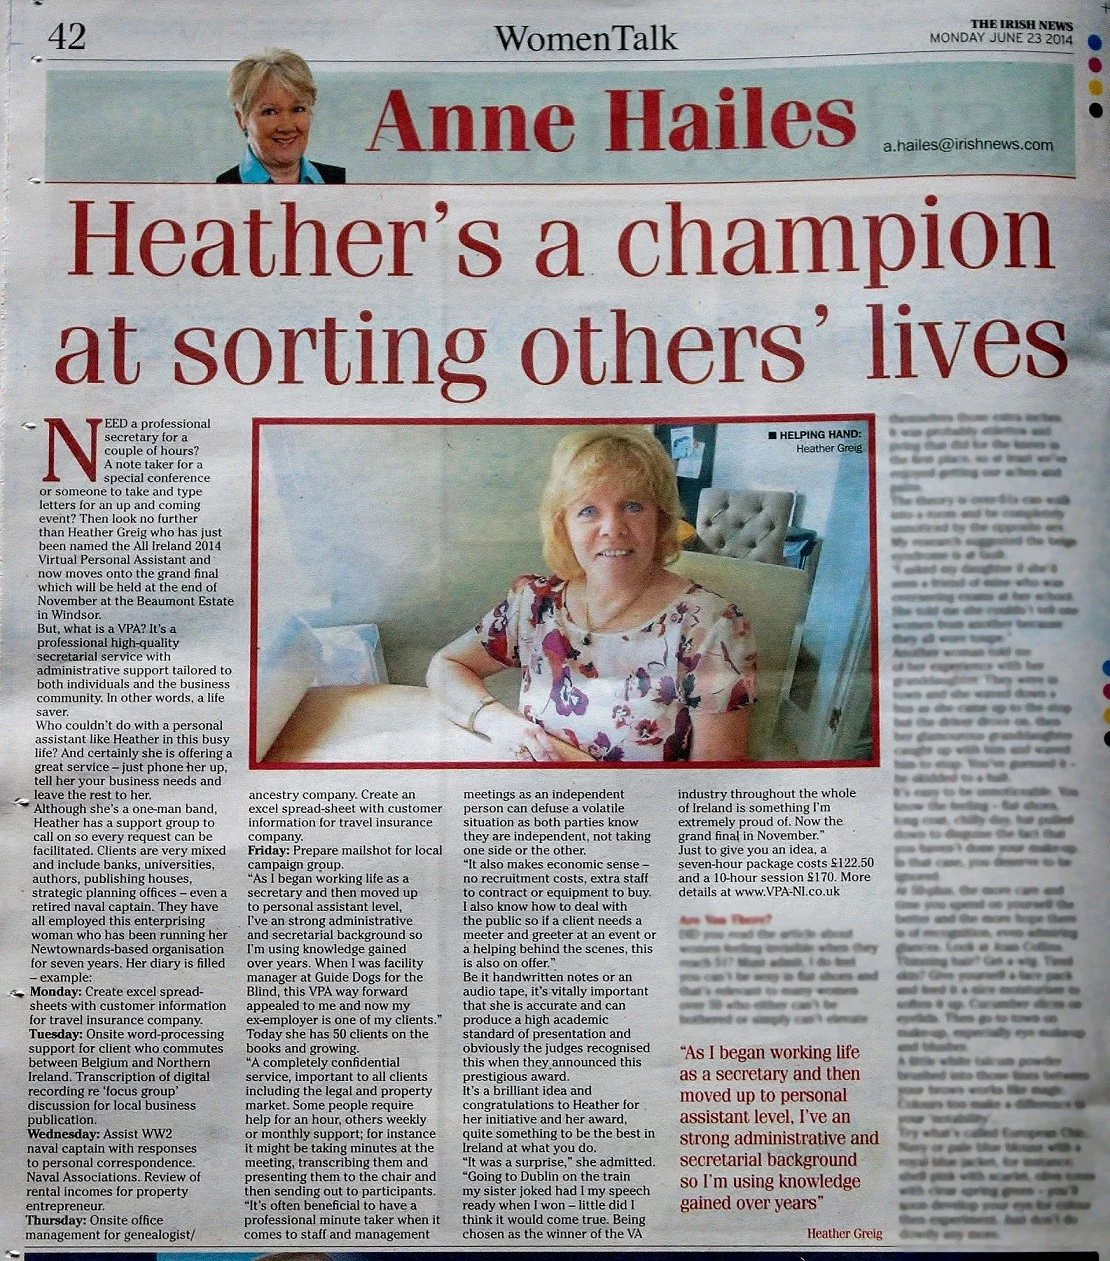 """Heather's a champion at sorting others lives."" reports Ann Hailes."